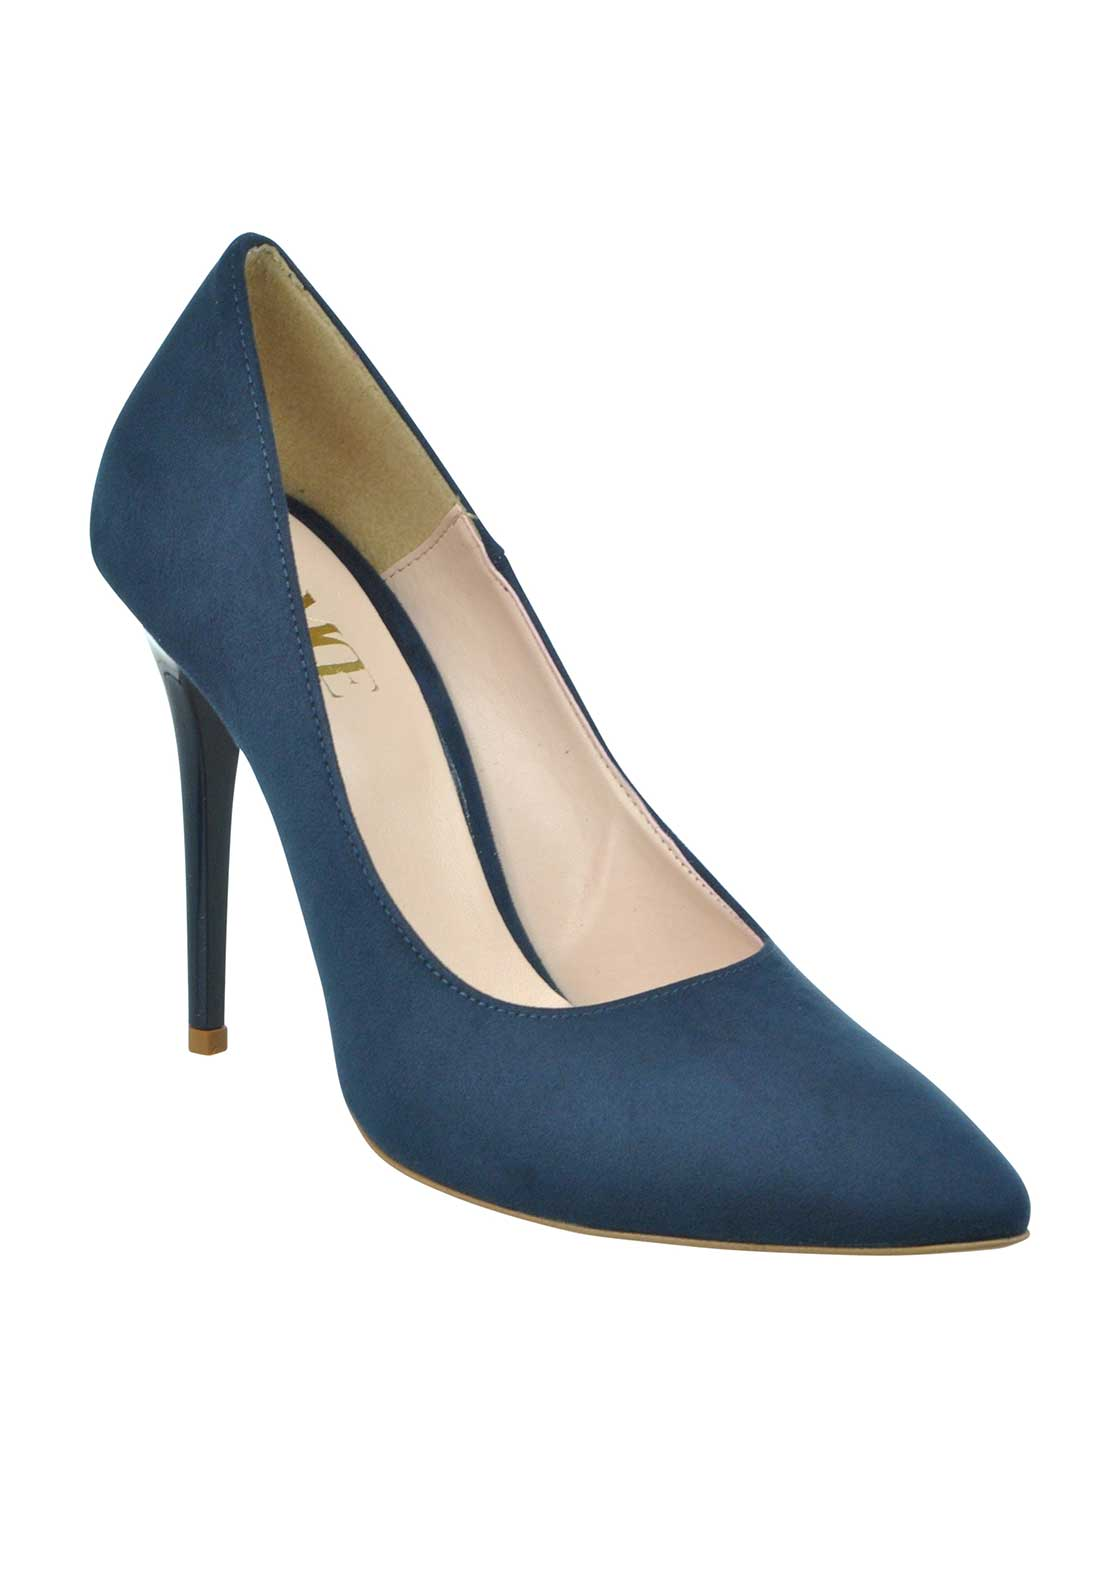 McElhinney's Faux Suede Pointed Toe Heeled Shoes, Navy